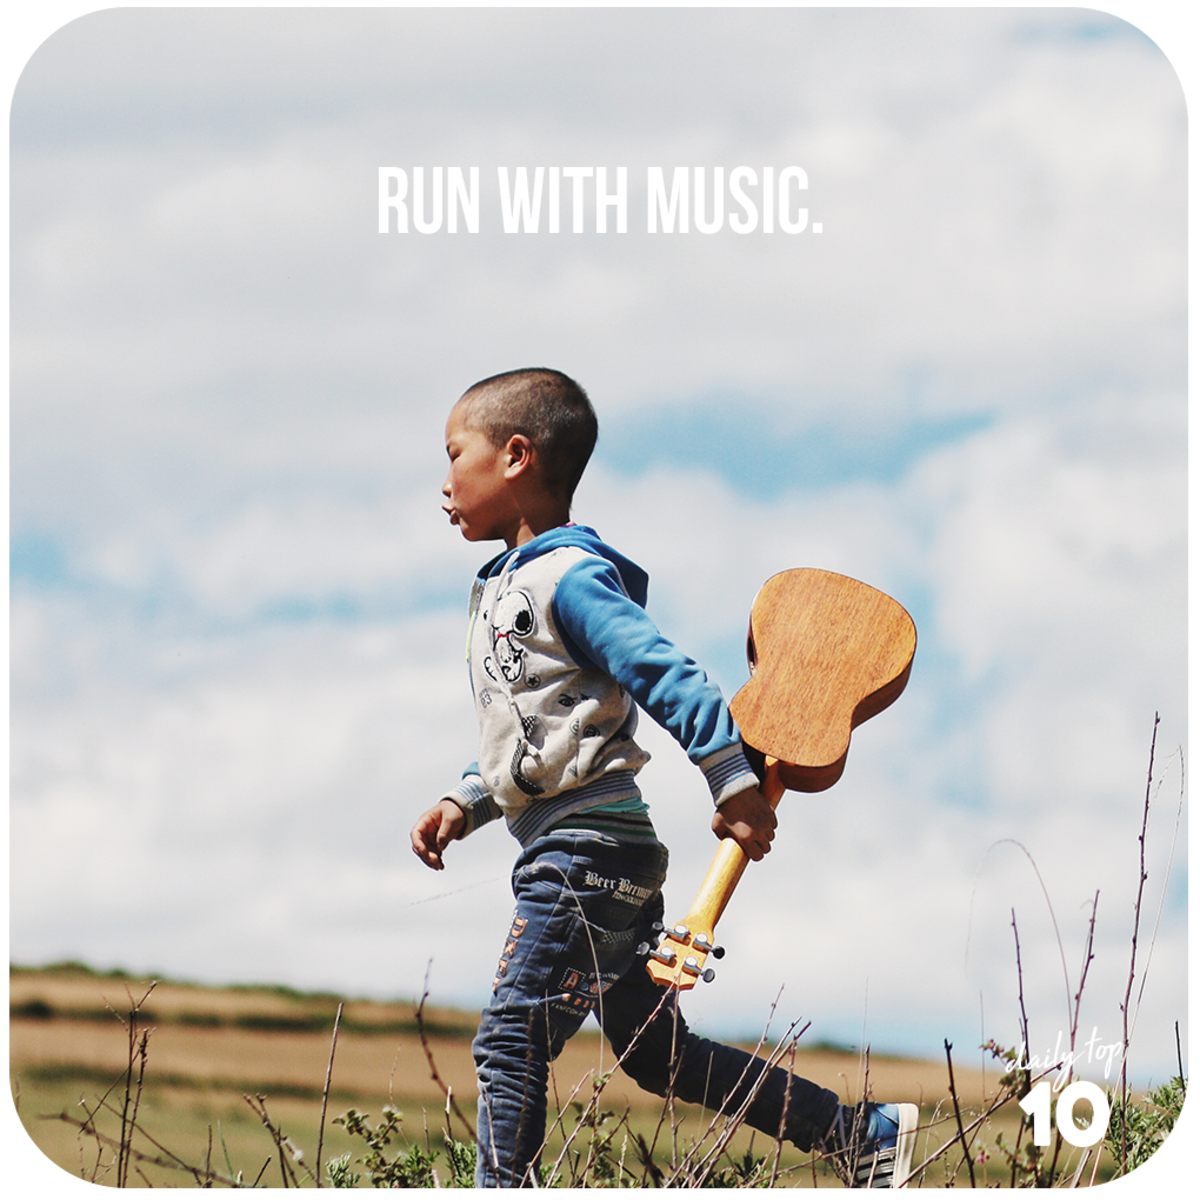 Run with music.